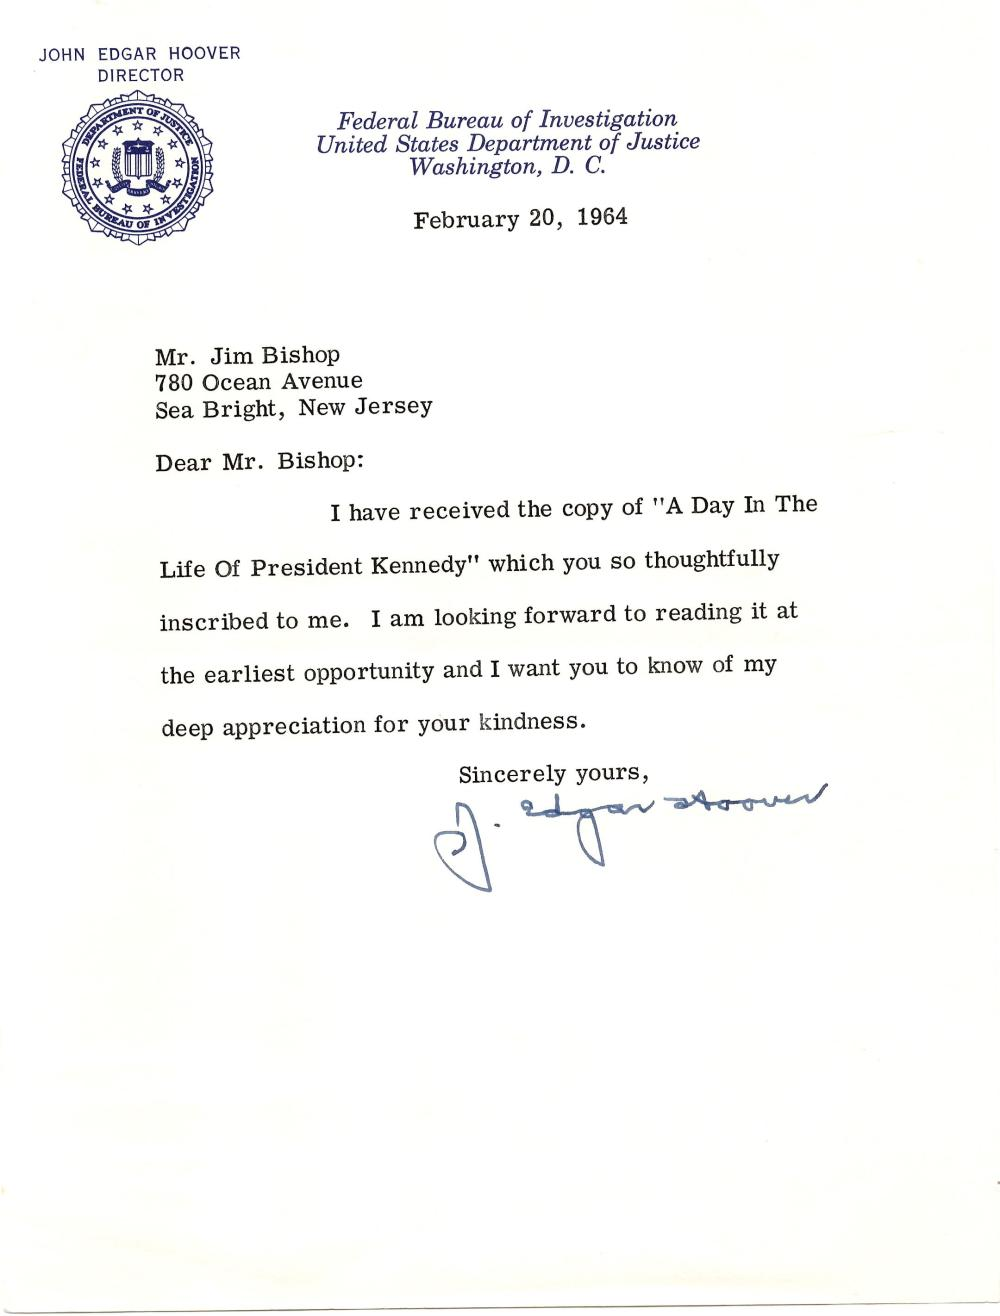 J. Edgar Hoover Two Typed Letters Signed, With JFK Content